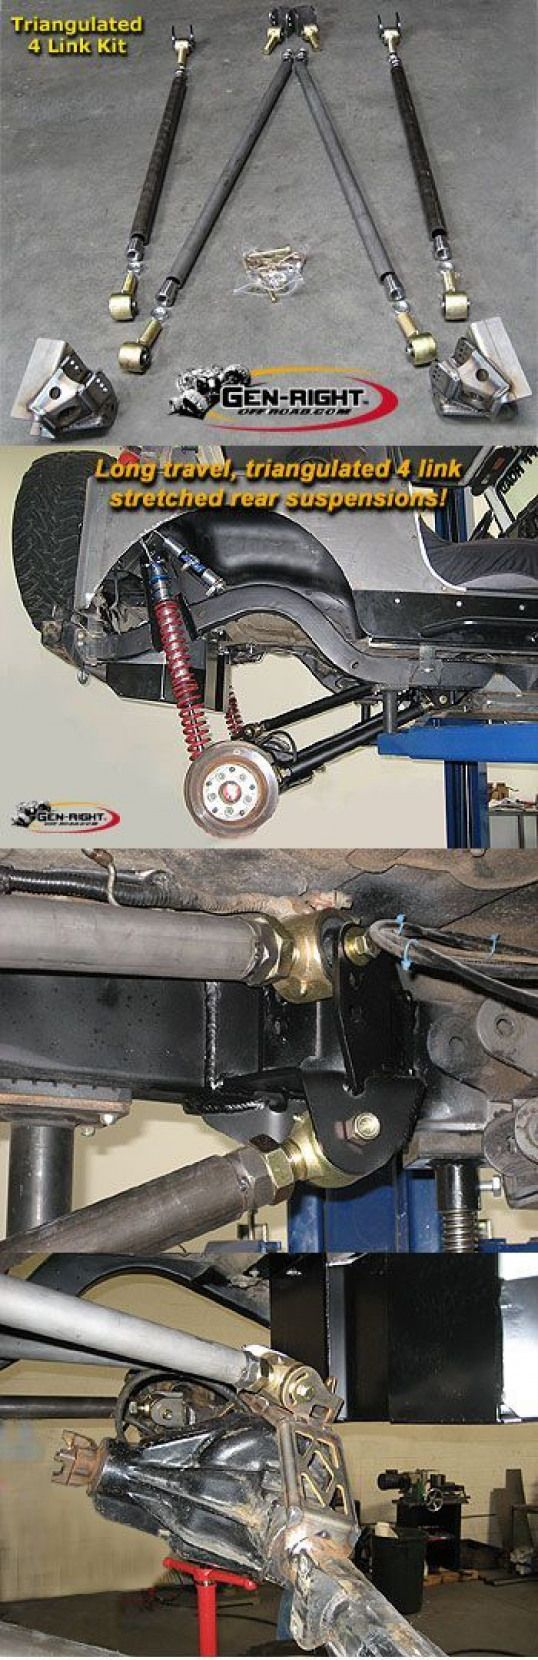 GenRight Off Road Rear 4 Link Suspension Kits Pirate4x4